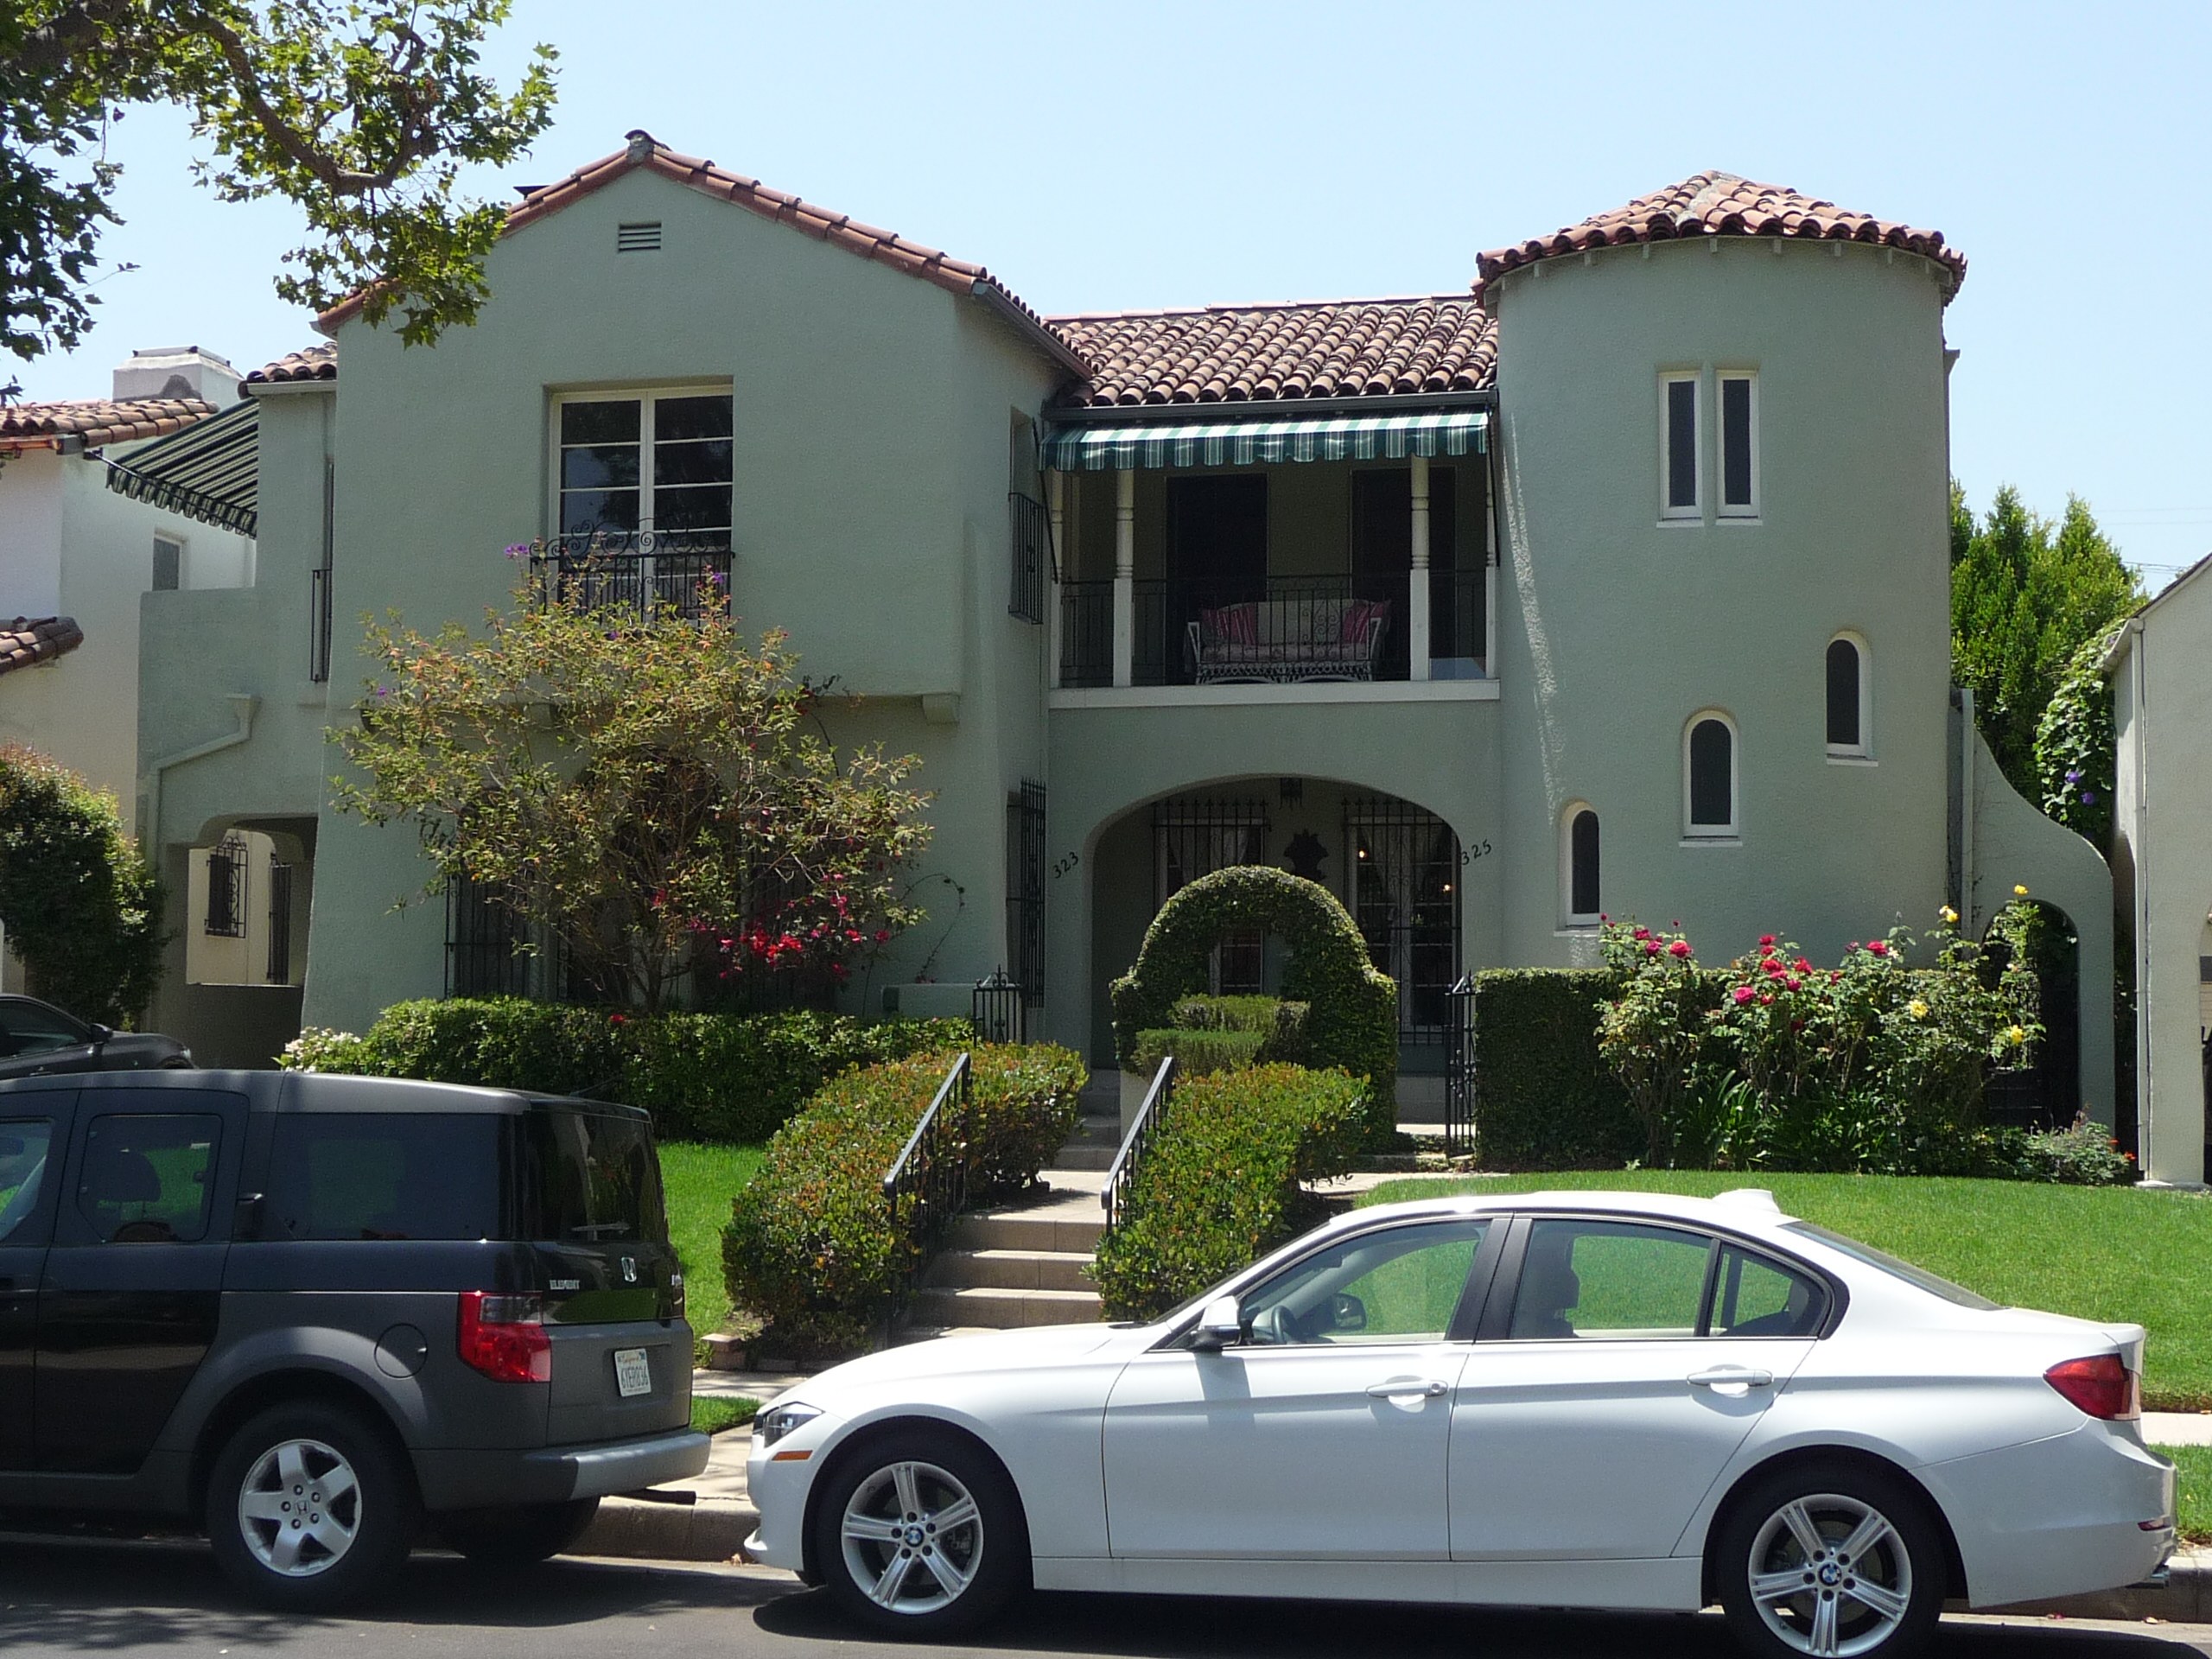 325 N MANSFIELD AVE - PHOTO